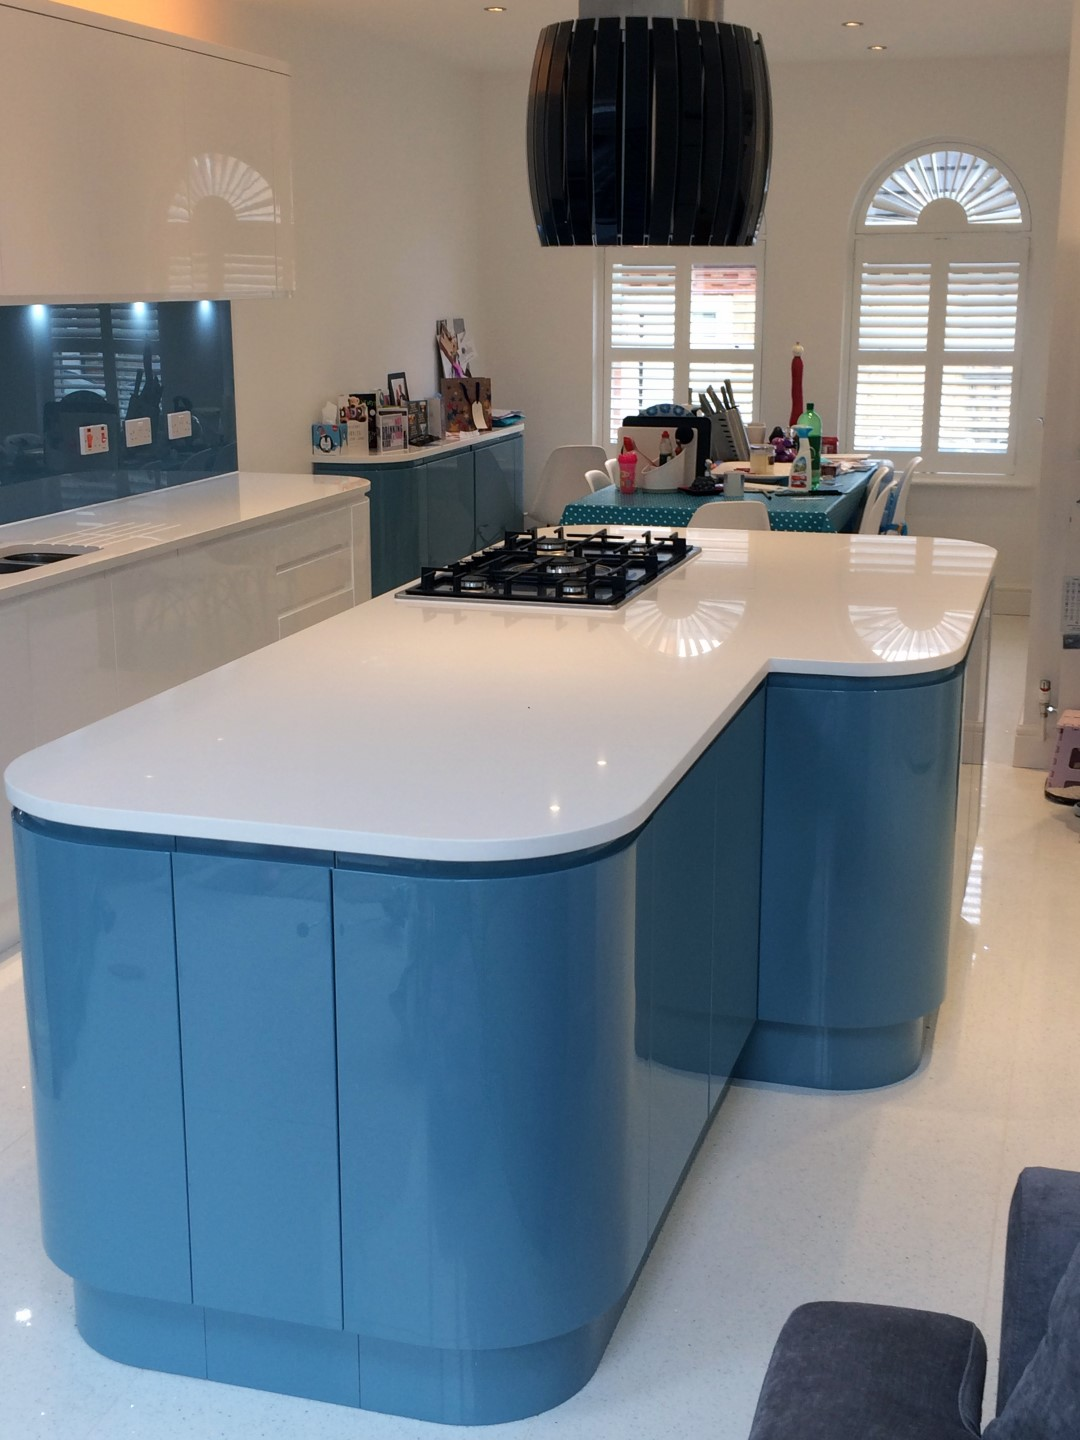 Handleless White Amp Blue German Kitchen Bishops Stortford